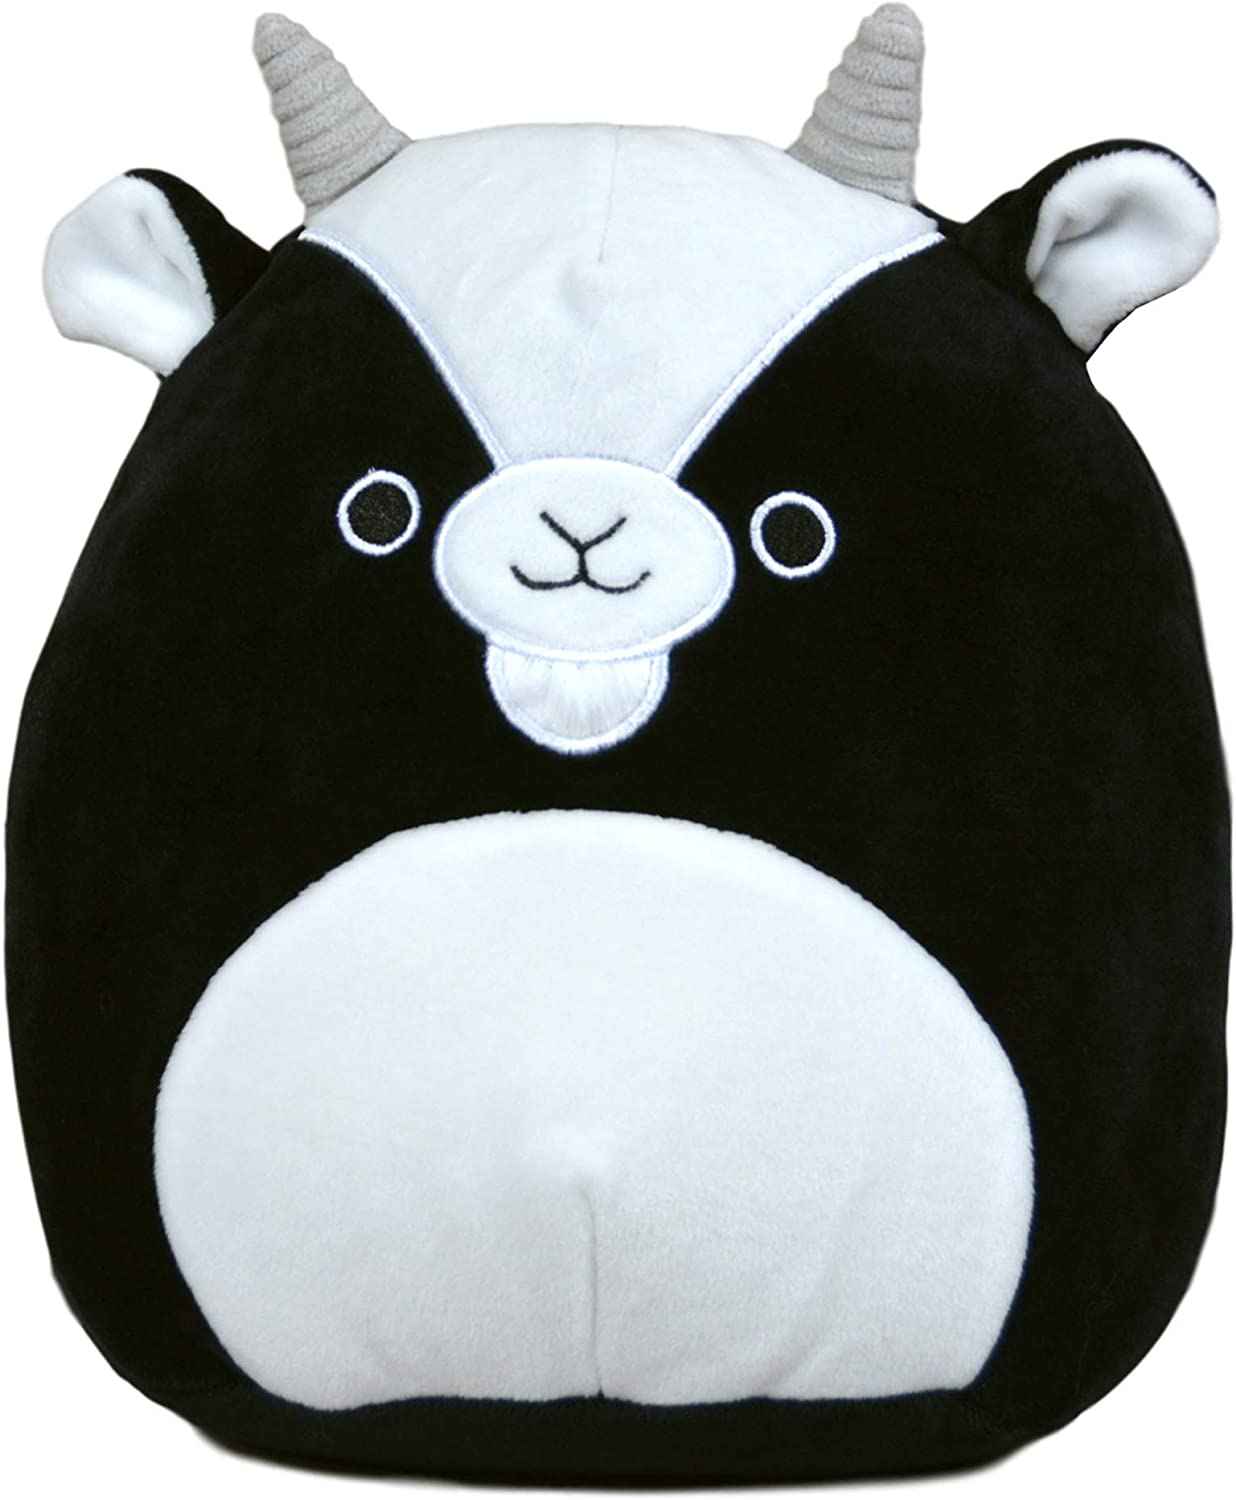 Squishmallow 8 Inch Gregory The Goat Stuffed Animal, Super Pillow Soft Plush Toy, Black